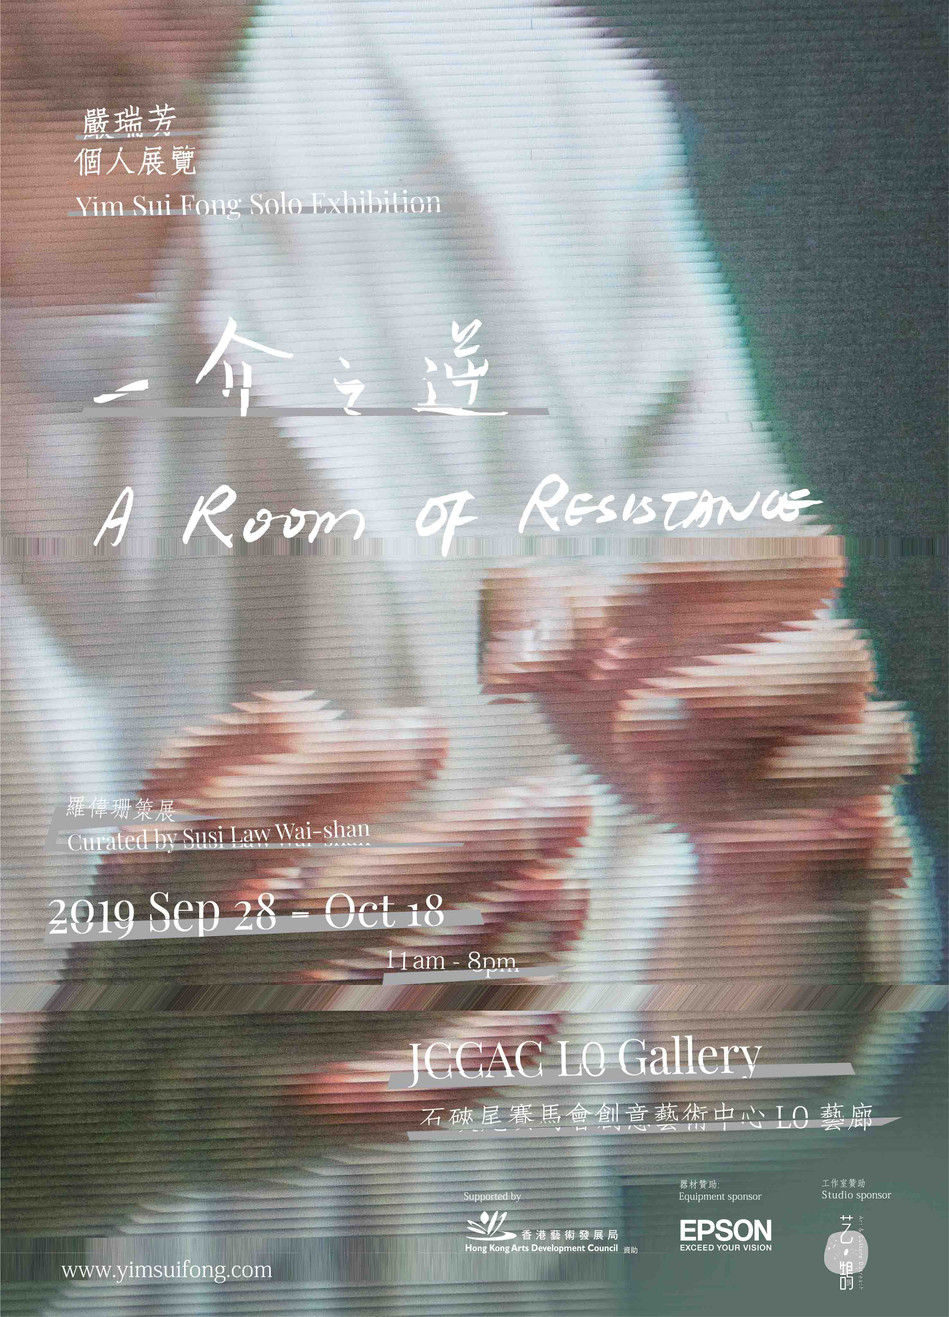 Solo exhibition:  A Room of Resistance